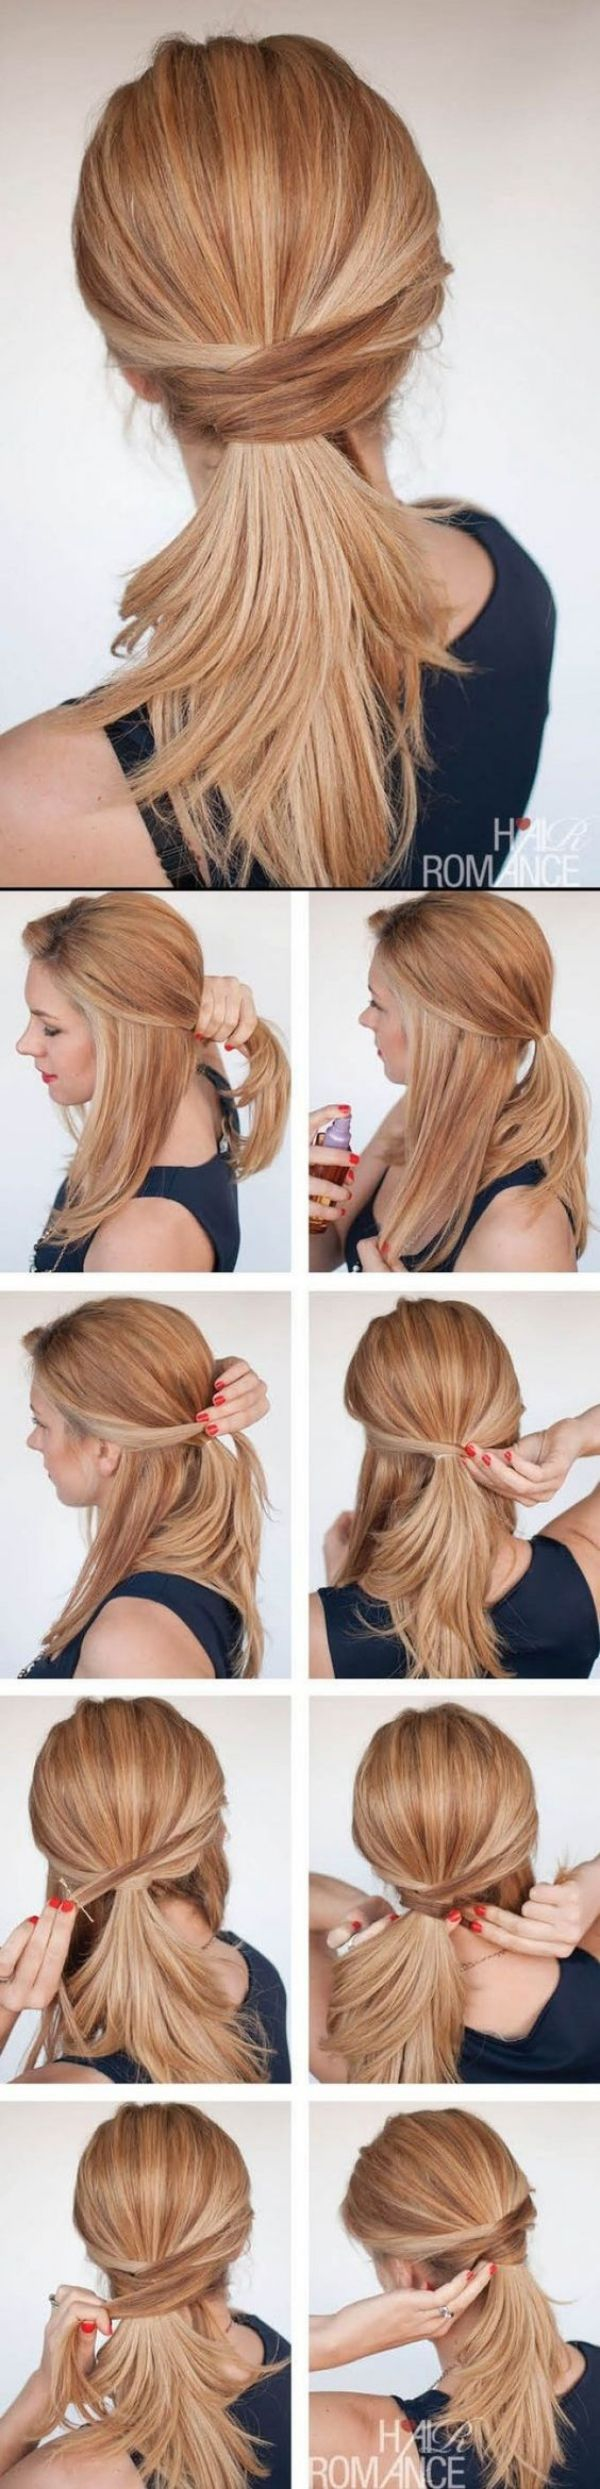 best 25+ office hairstyles ideas on pinterest | office hair, work